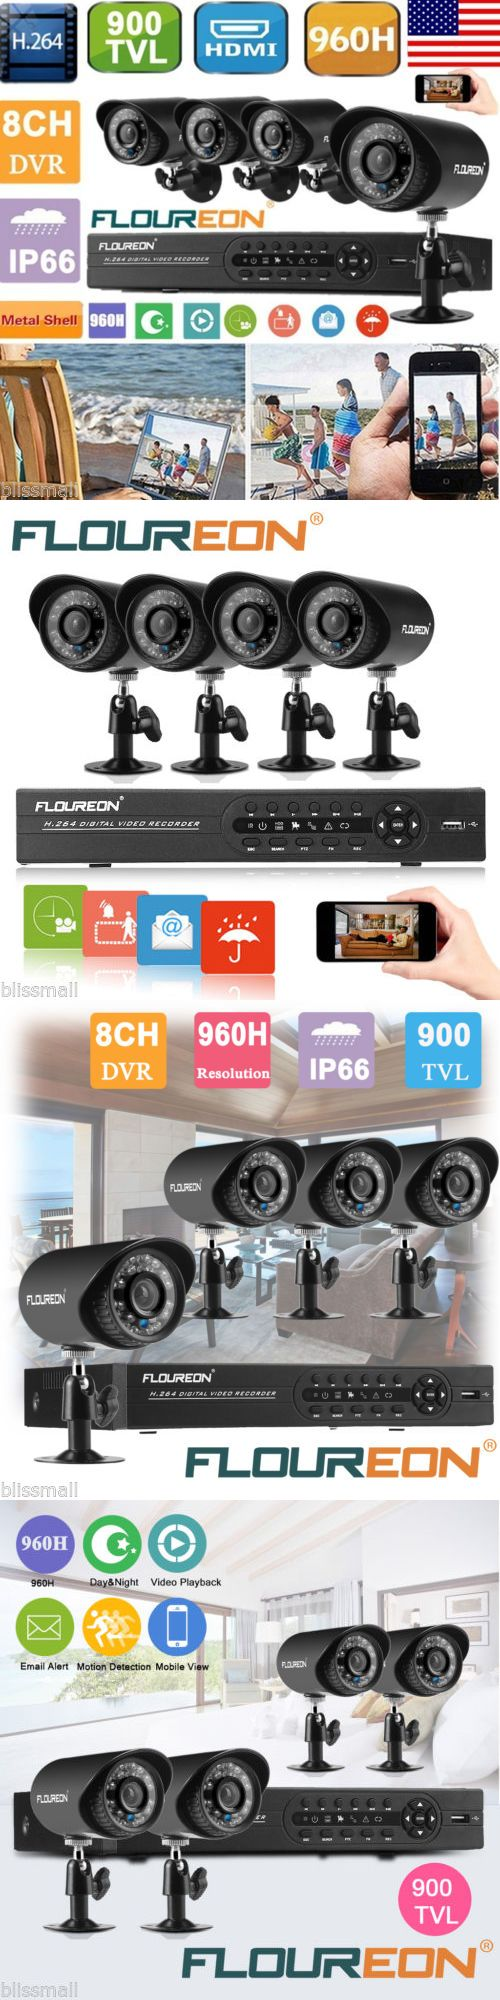 Surveillance Security Systems: Floureon 8Ch 960H Hdmi Dvr 900Tvl Outdoor Video Cctv Security Camera System P2p BUY IT NOW ONLY: $82.99